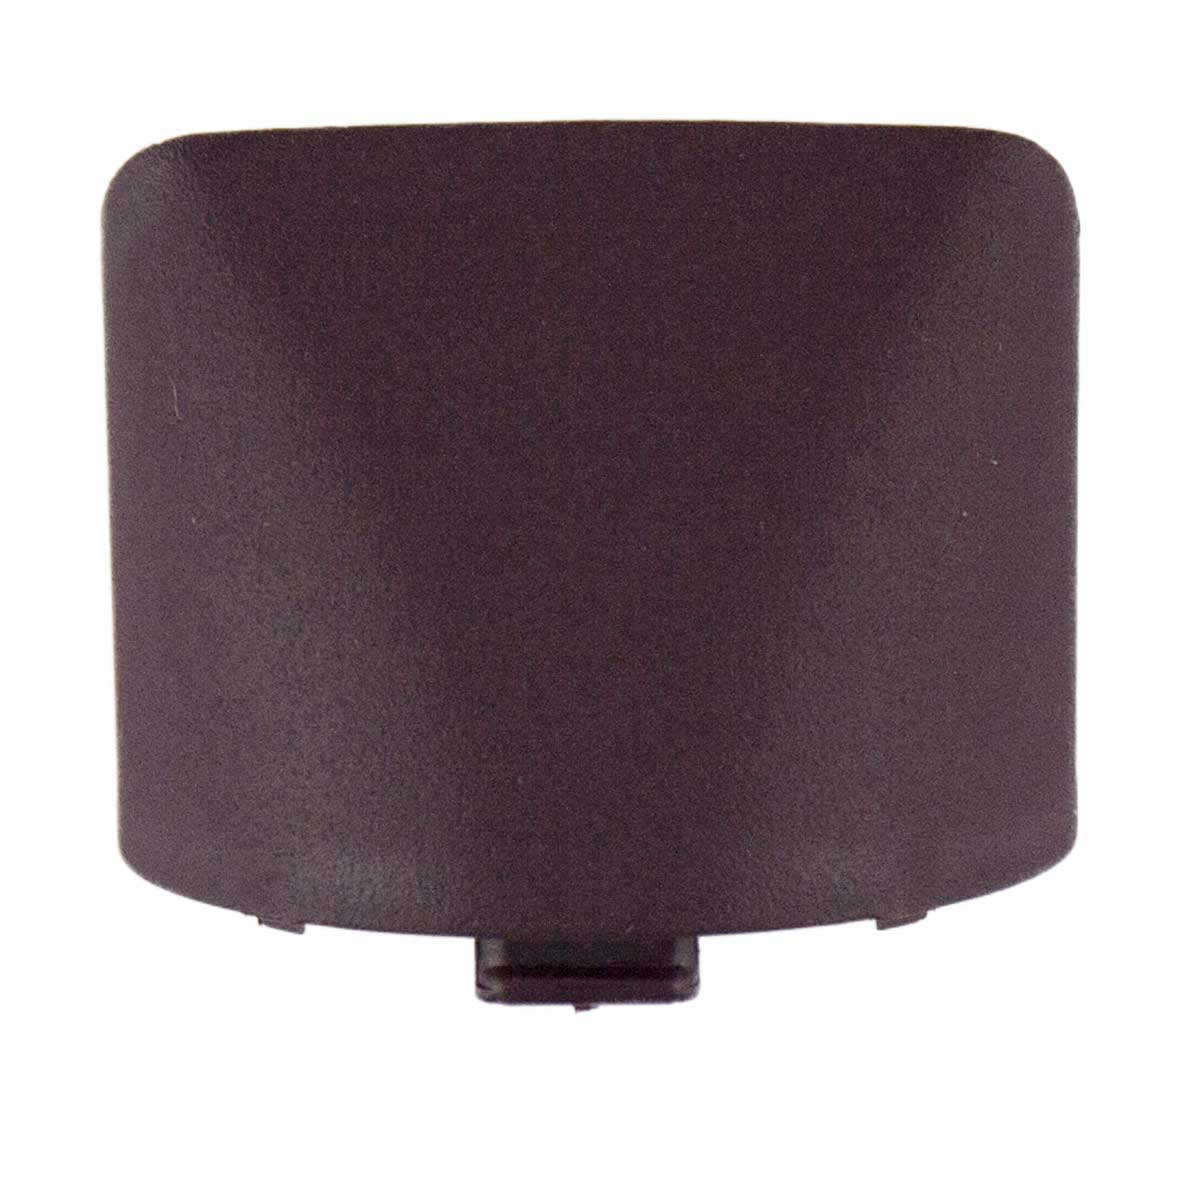 Drive Cap for Andis Burgundy 2-Speed AGC Clipper